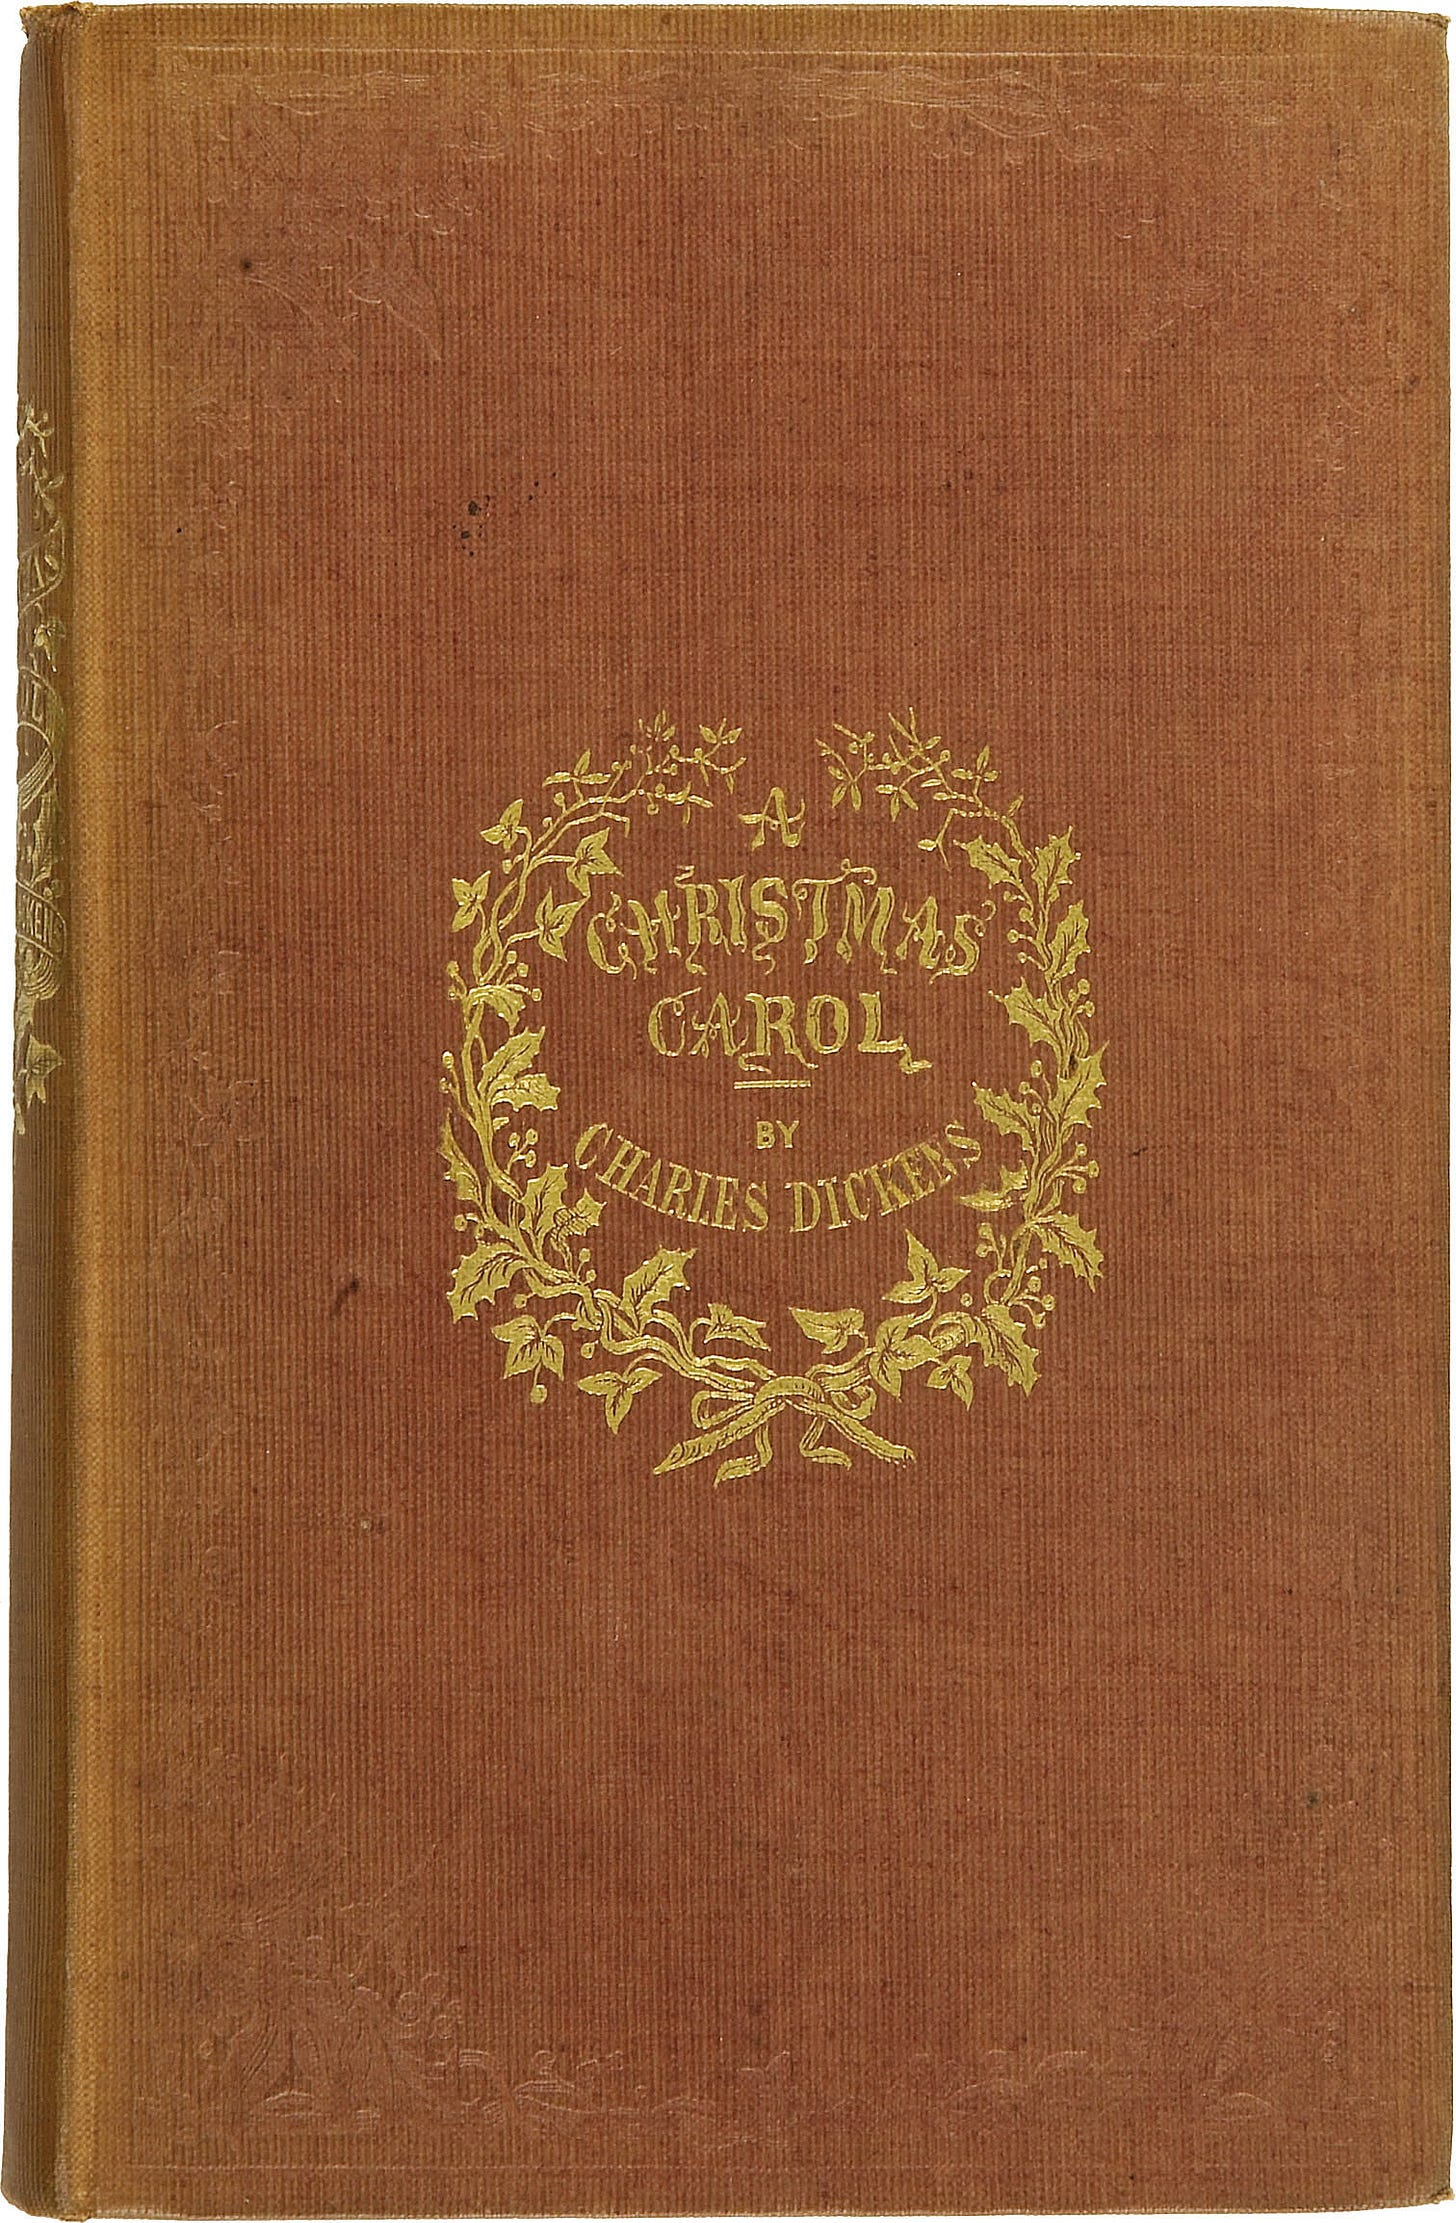 https://upload.wikimedia.org/wikipedia/commons/4/4f/Charles_Dickens-A_Christmas_Carol-Cloth-First_Edition_1843.jpg